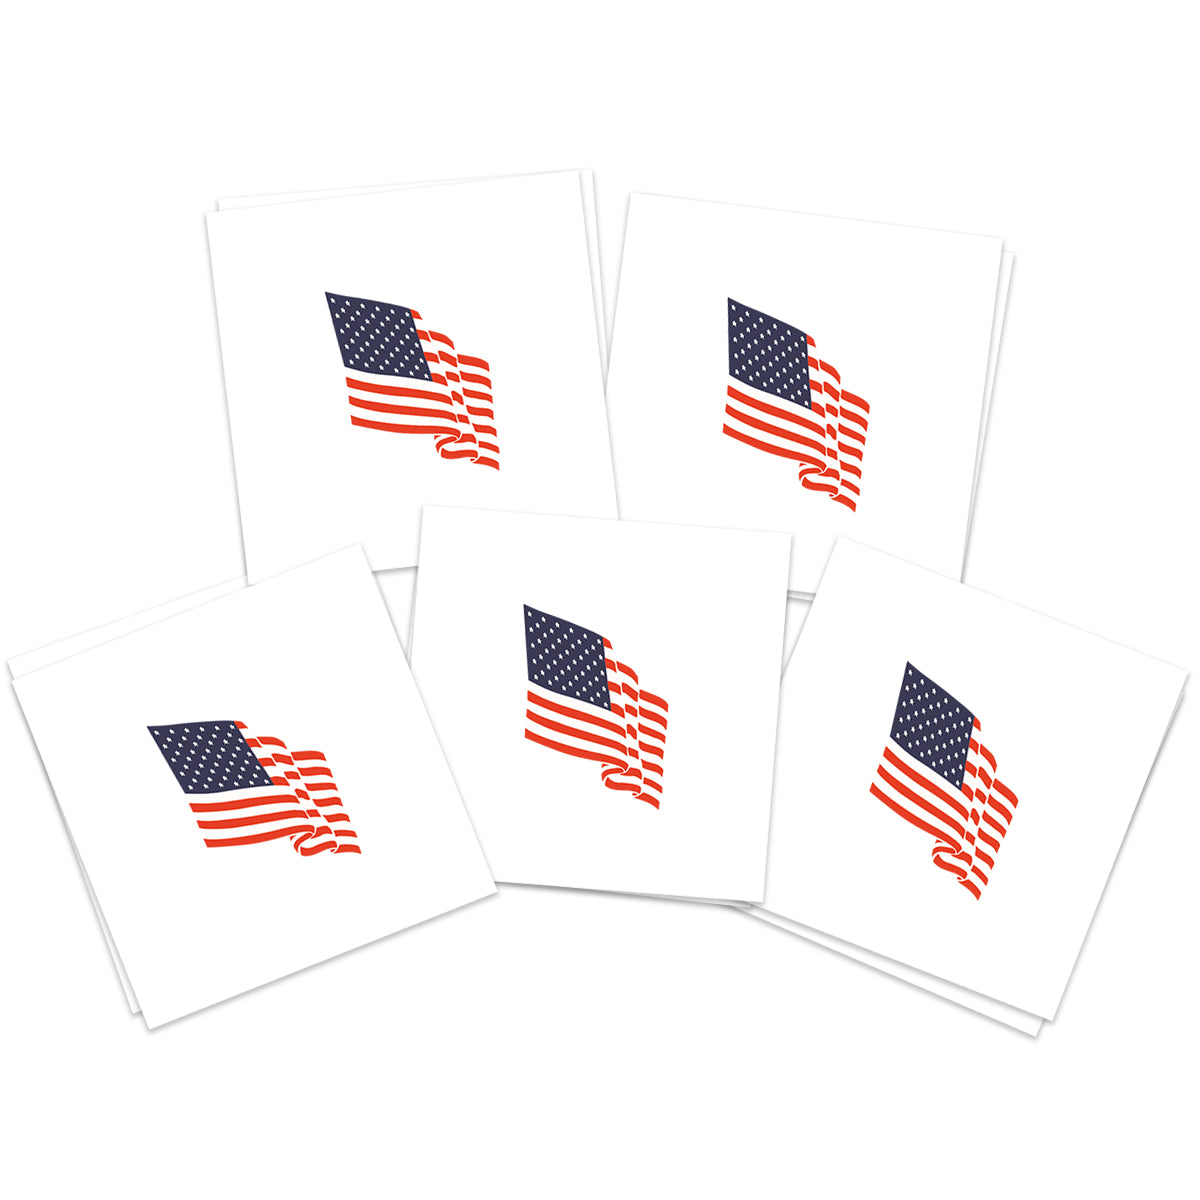 Waving American Flag (10-Pack)